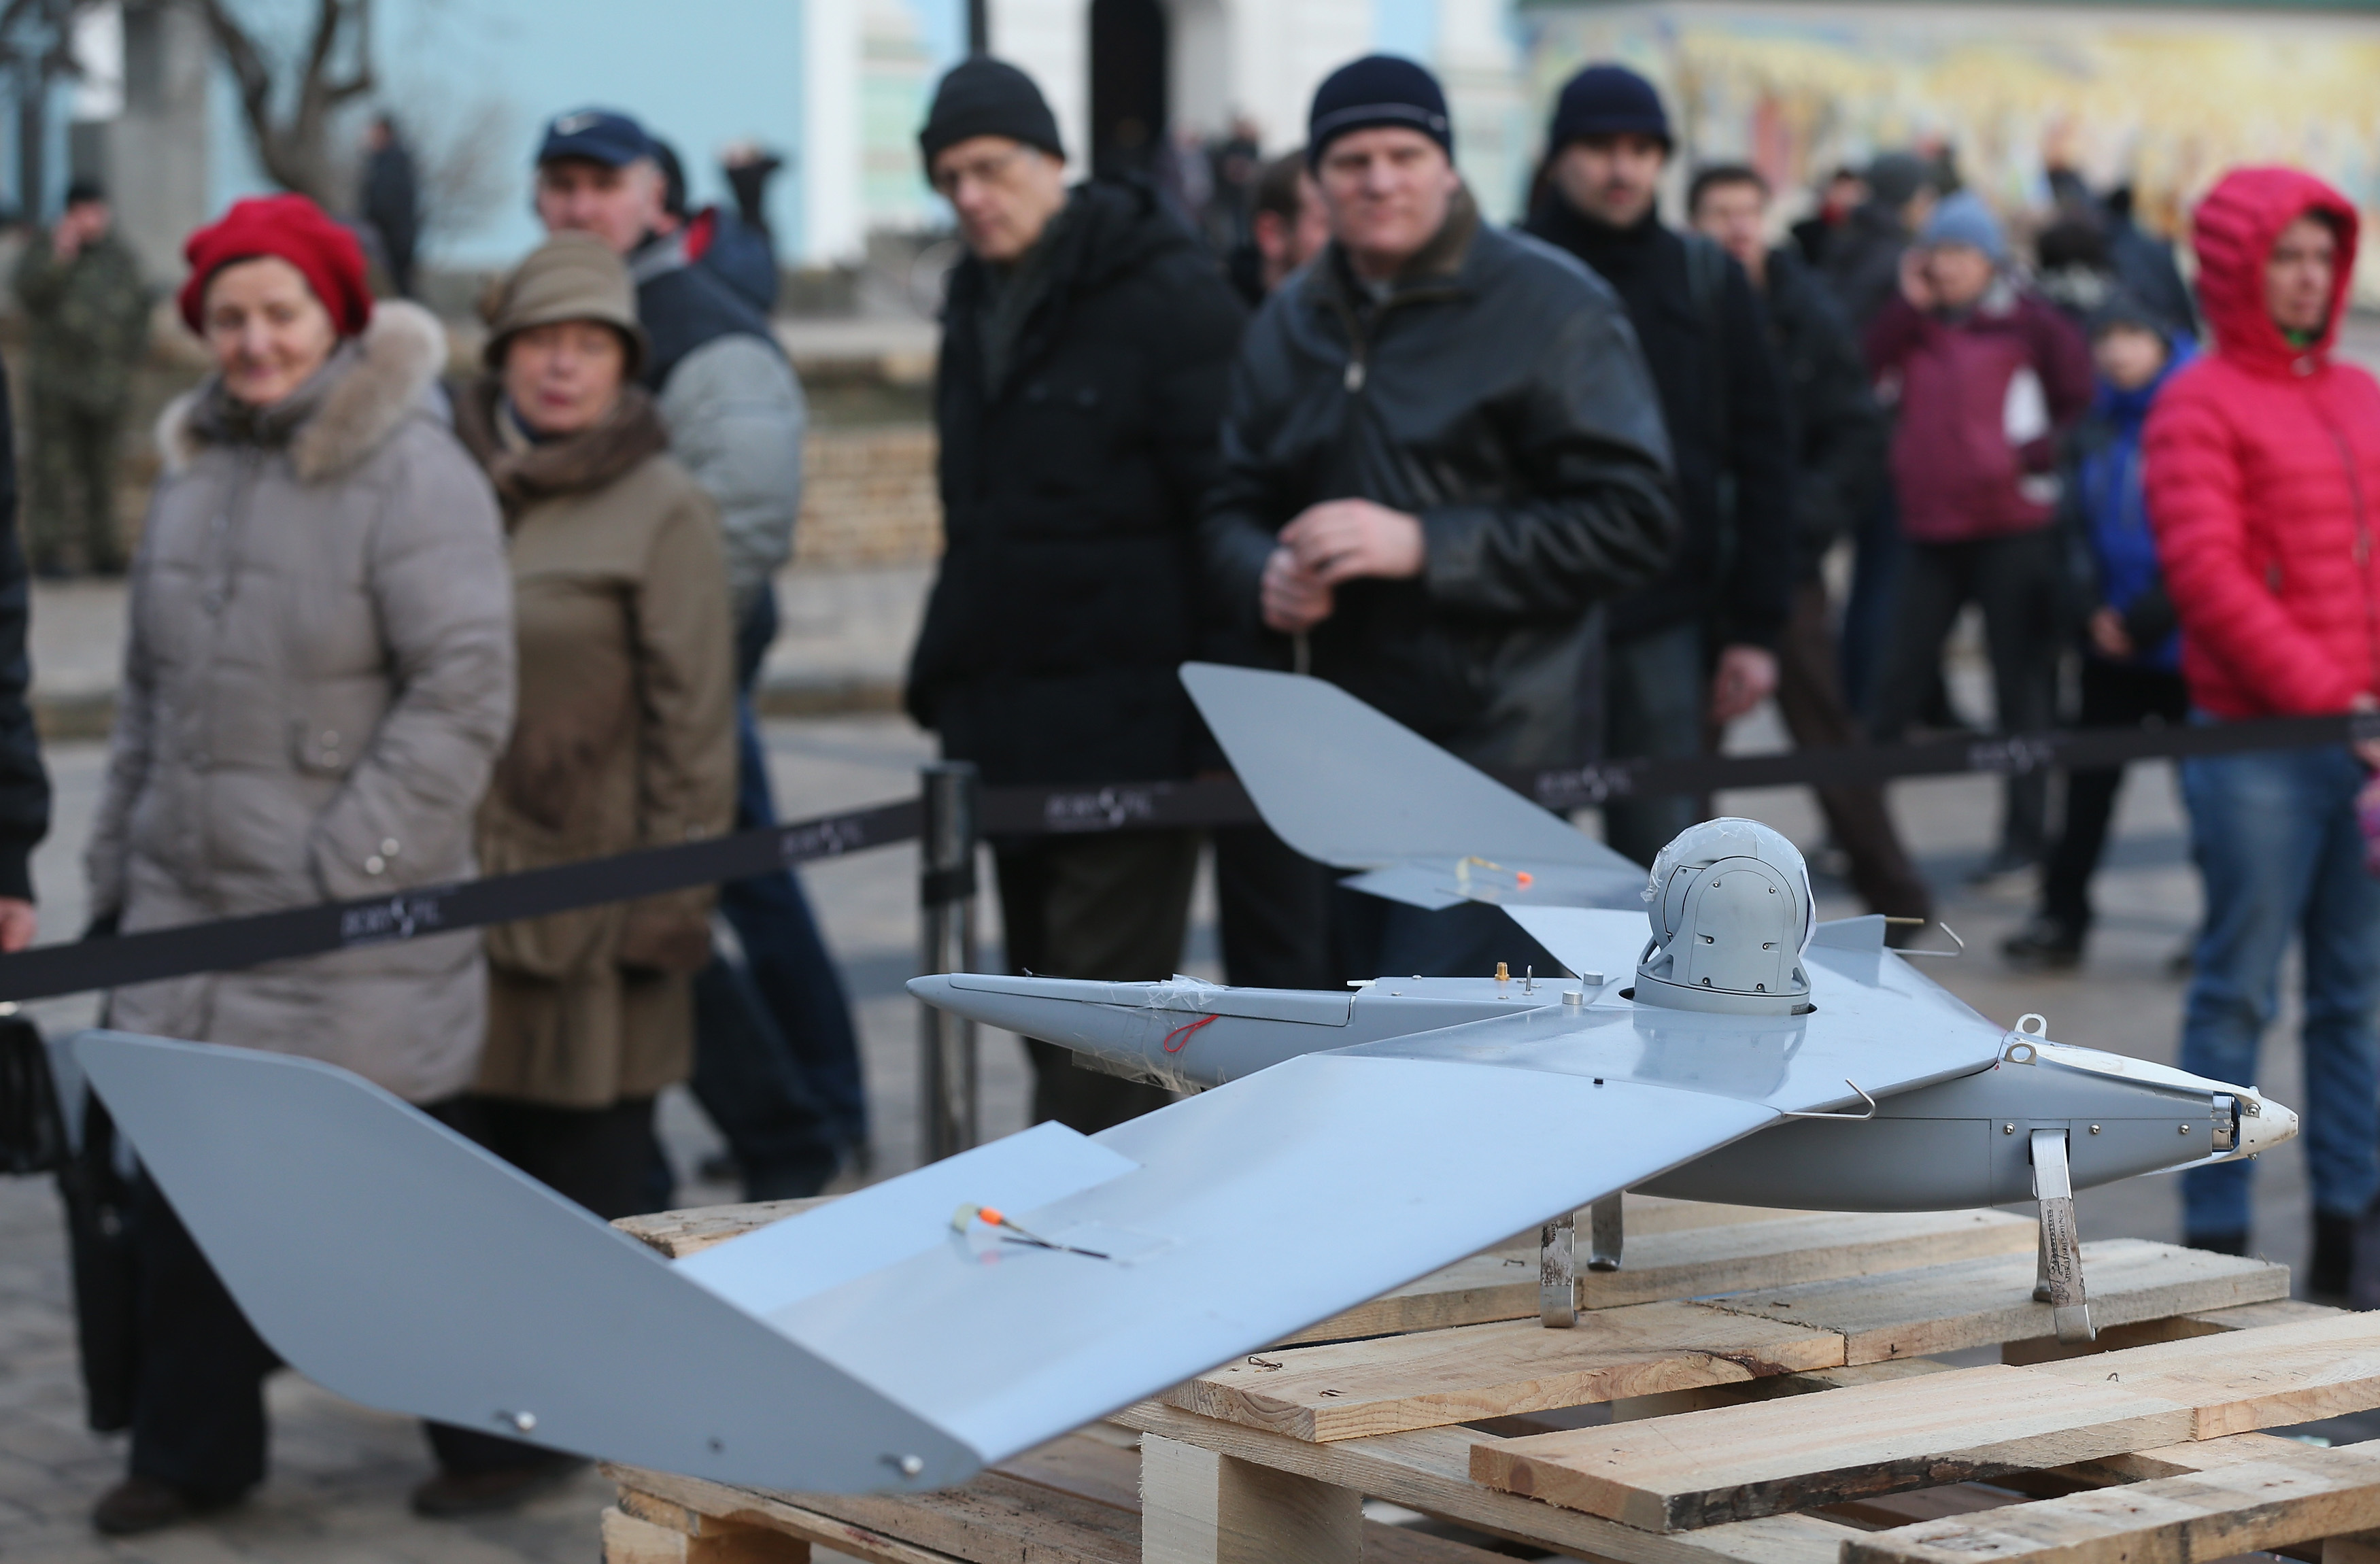 A drone on display in Kyiv, Ukraine, that Ukrainian officials say was recovered from the front lines and proves Russian involvement in the conflict.